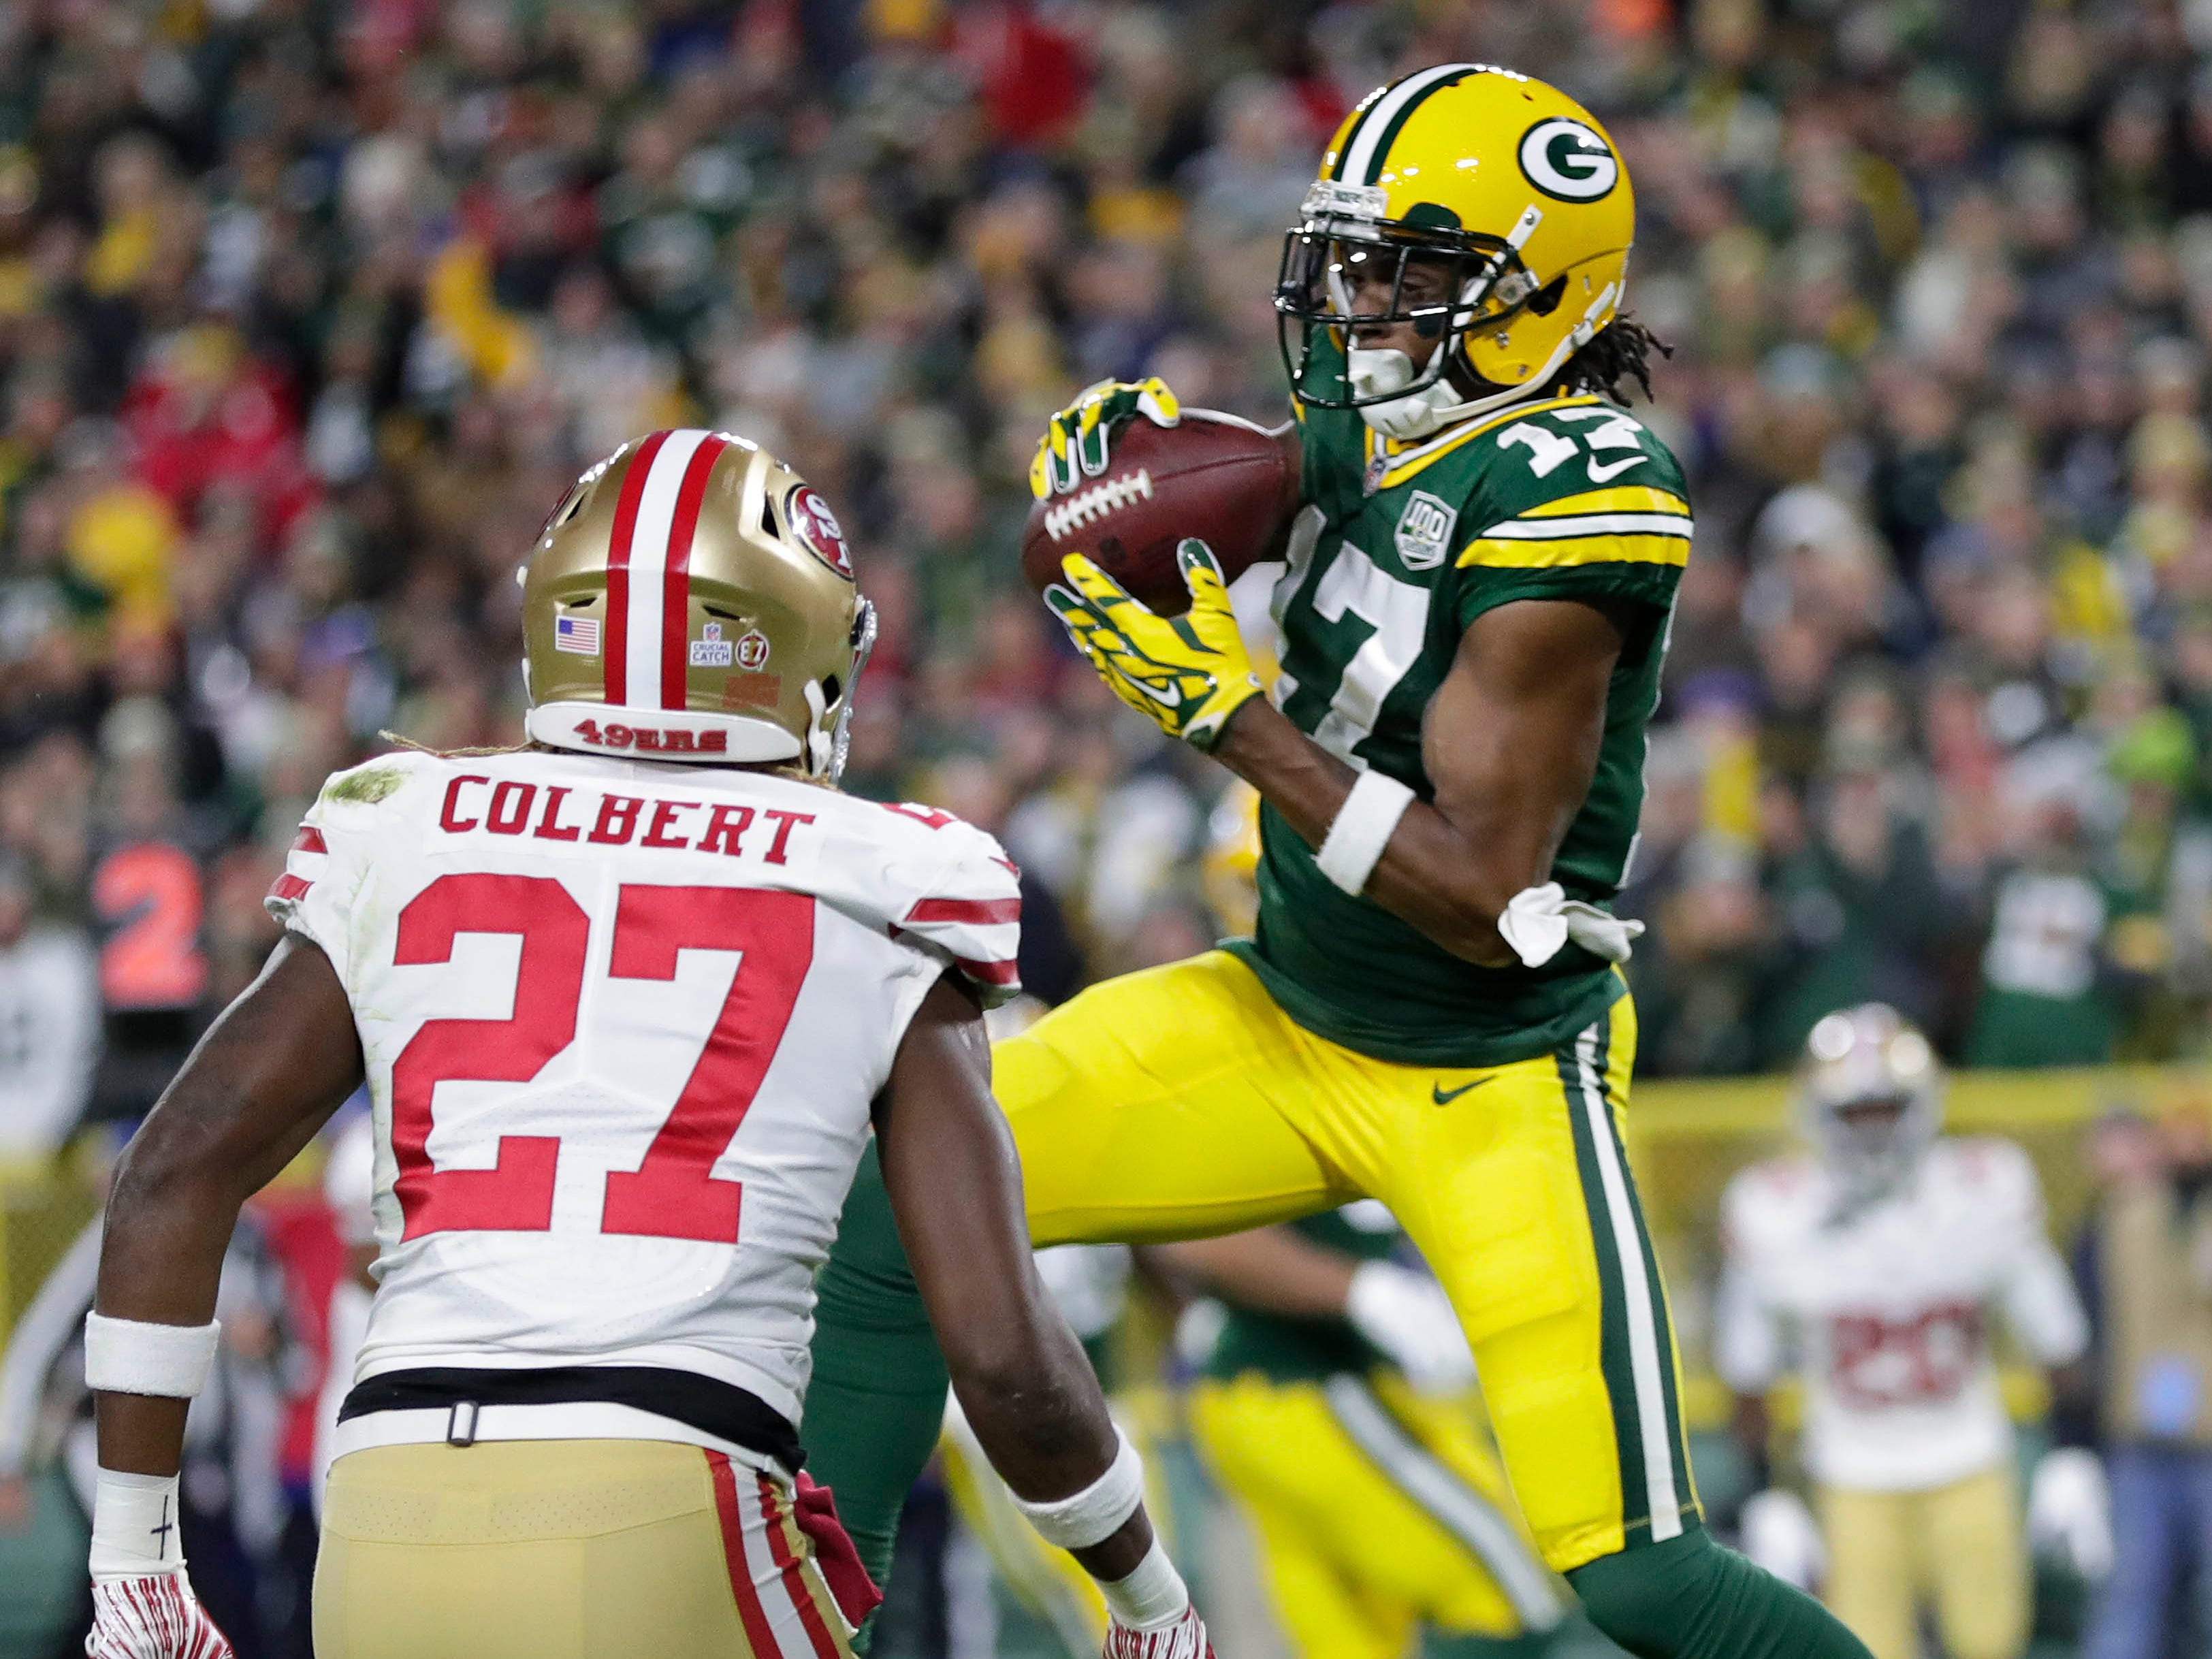 Green Bay Packers wide receiver Davante Adams scores a touchdown against the San Francisco 49ers at Lambeau Field.